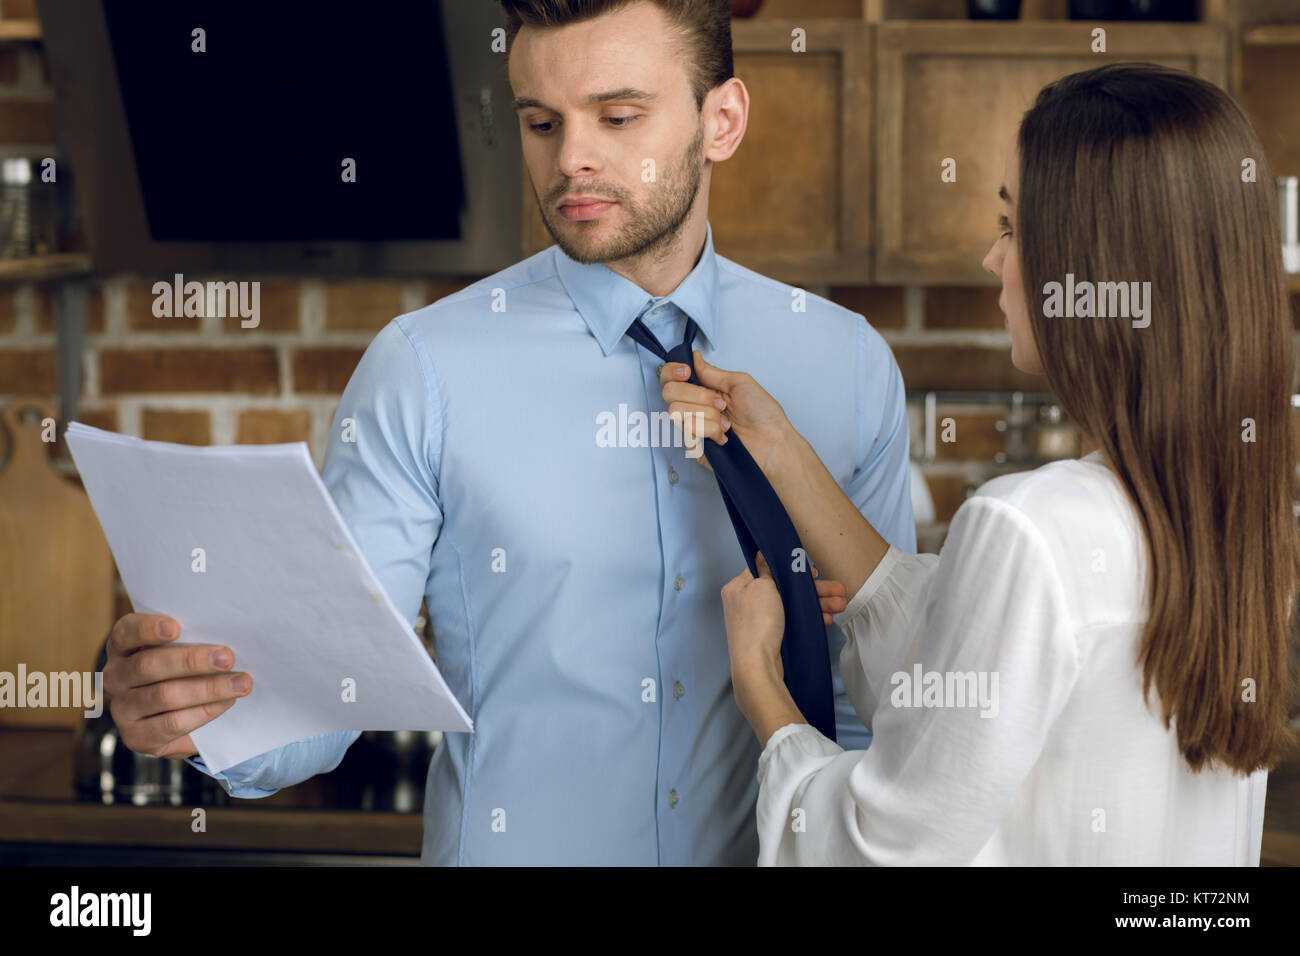 businessman reading documents while wife tying tie - Stock Image